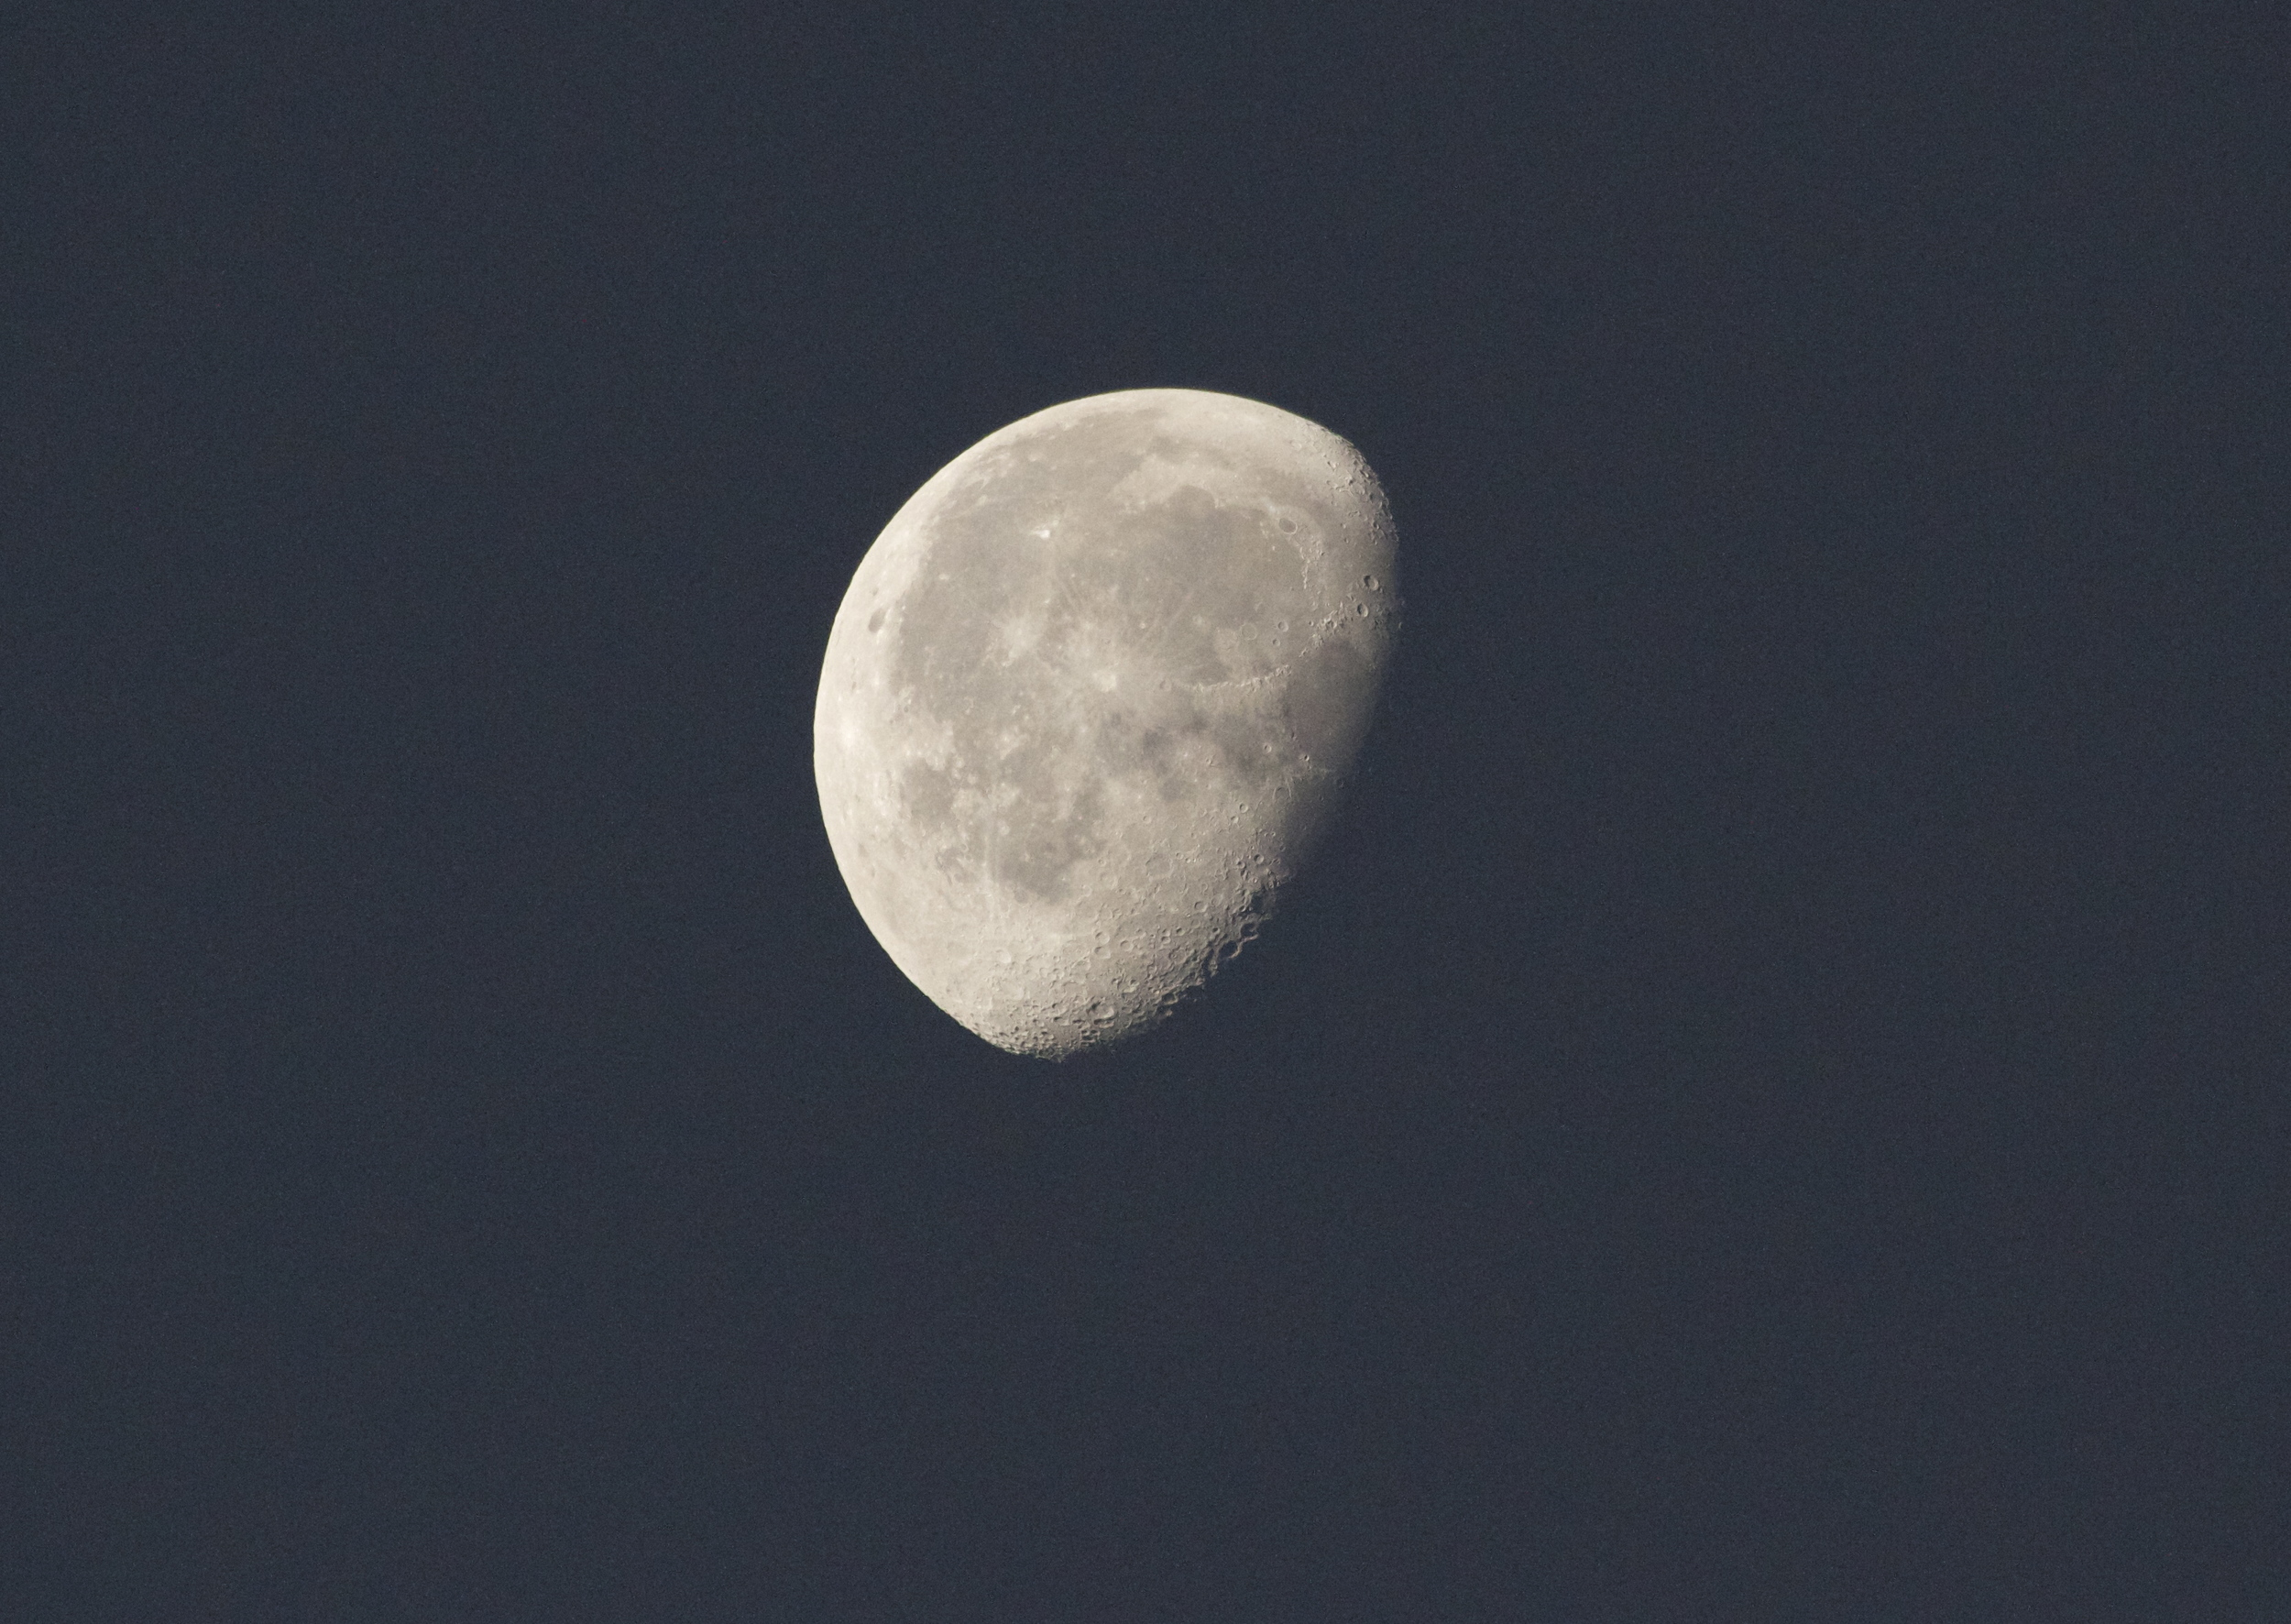 Beautiful predawn waning moon with craters visible lower right,